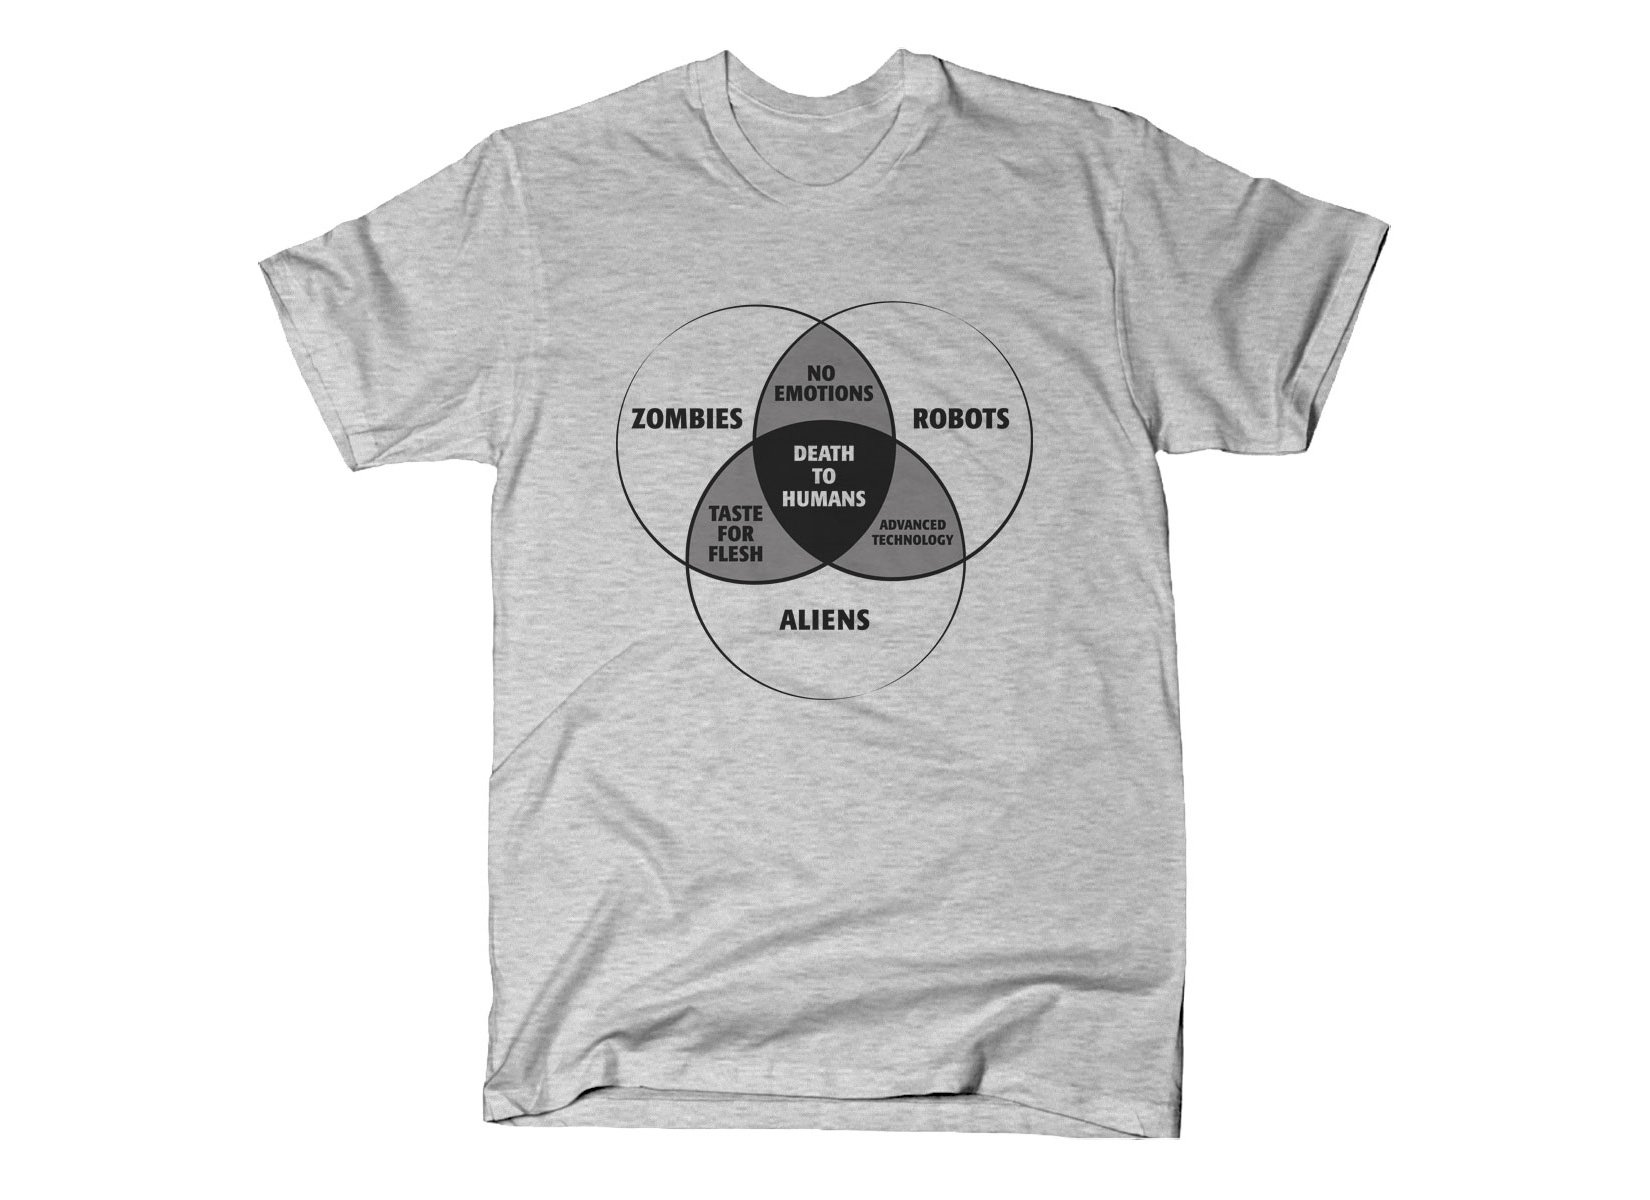 snorg_zombieveendiagram_1 zombies, robots, and aliens venn diagram t shirt snorgtees shirt diagram at mifinder.co